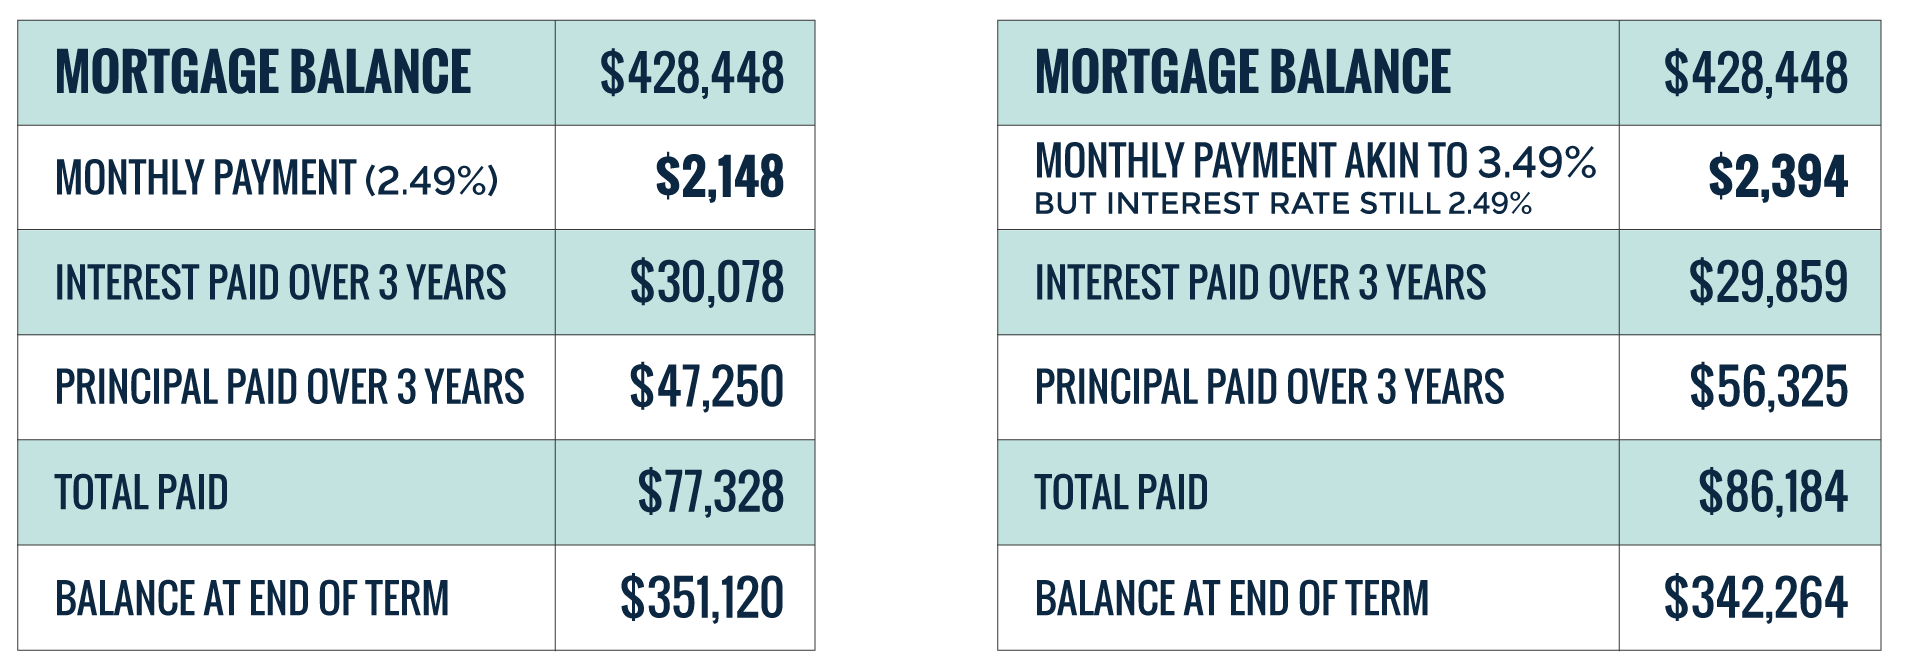 same versus increased mortgage payments years 3 to 5